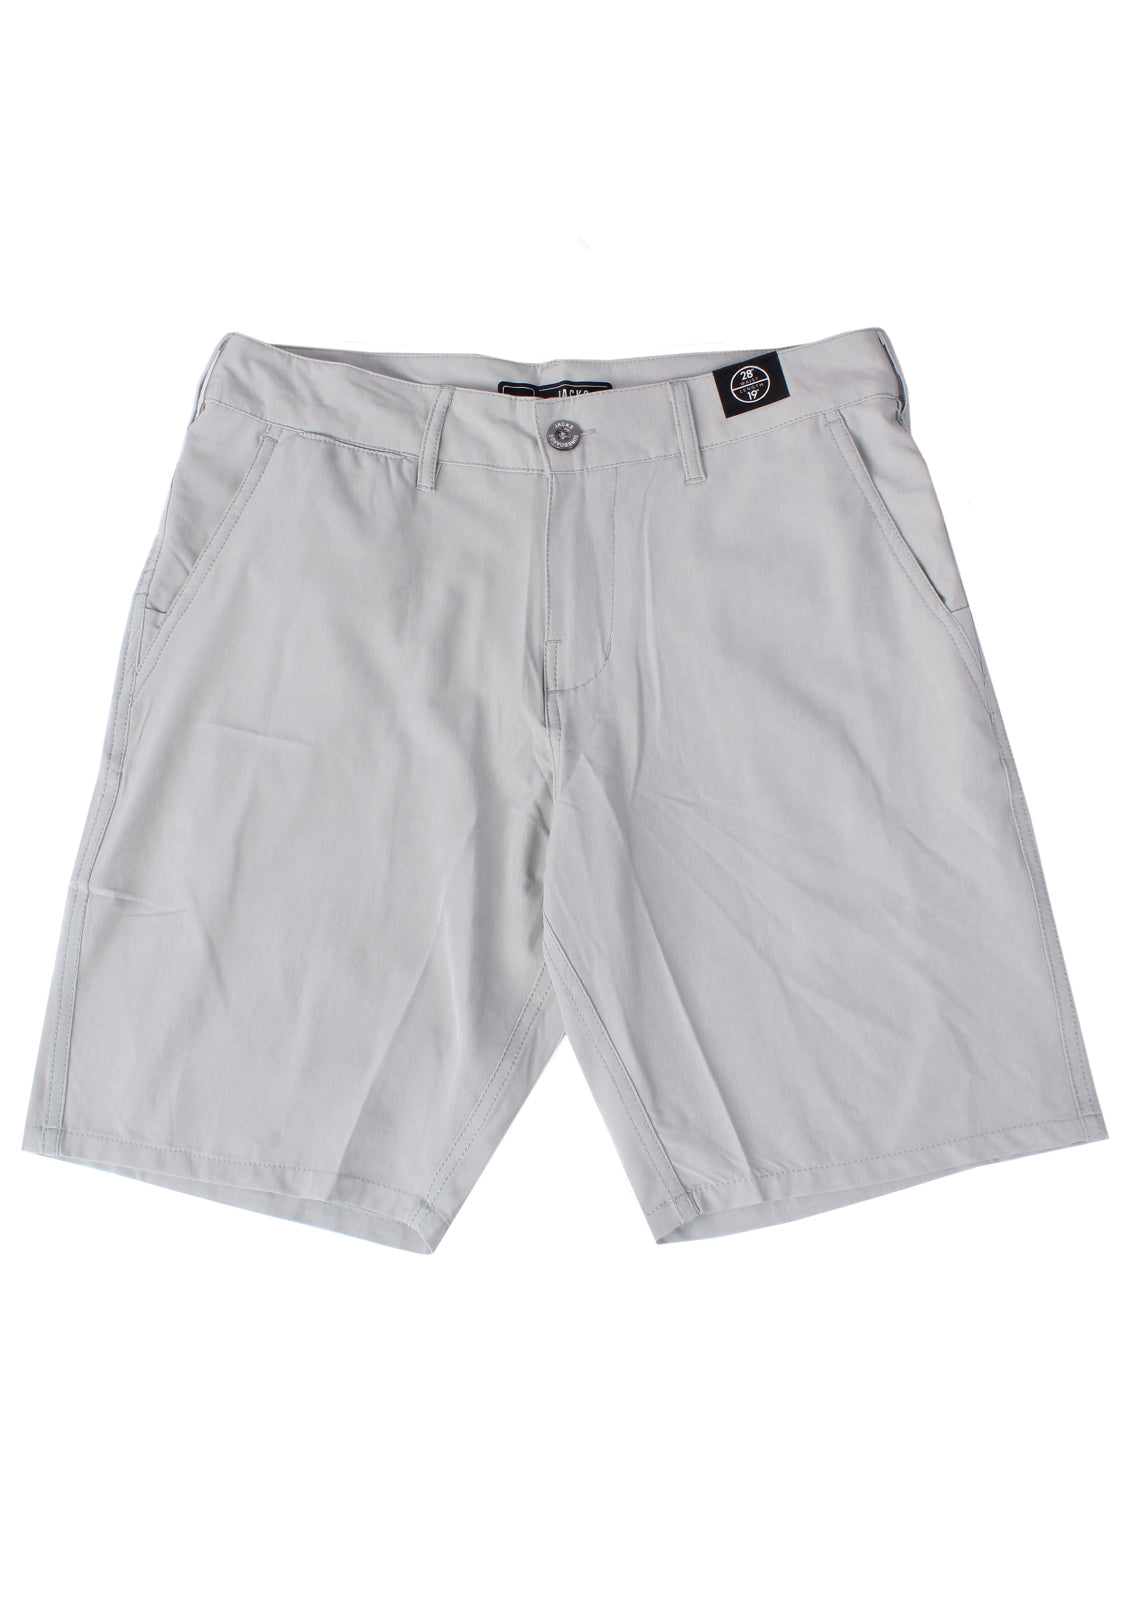 Jacks Surfboard Miller Hybrid Short